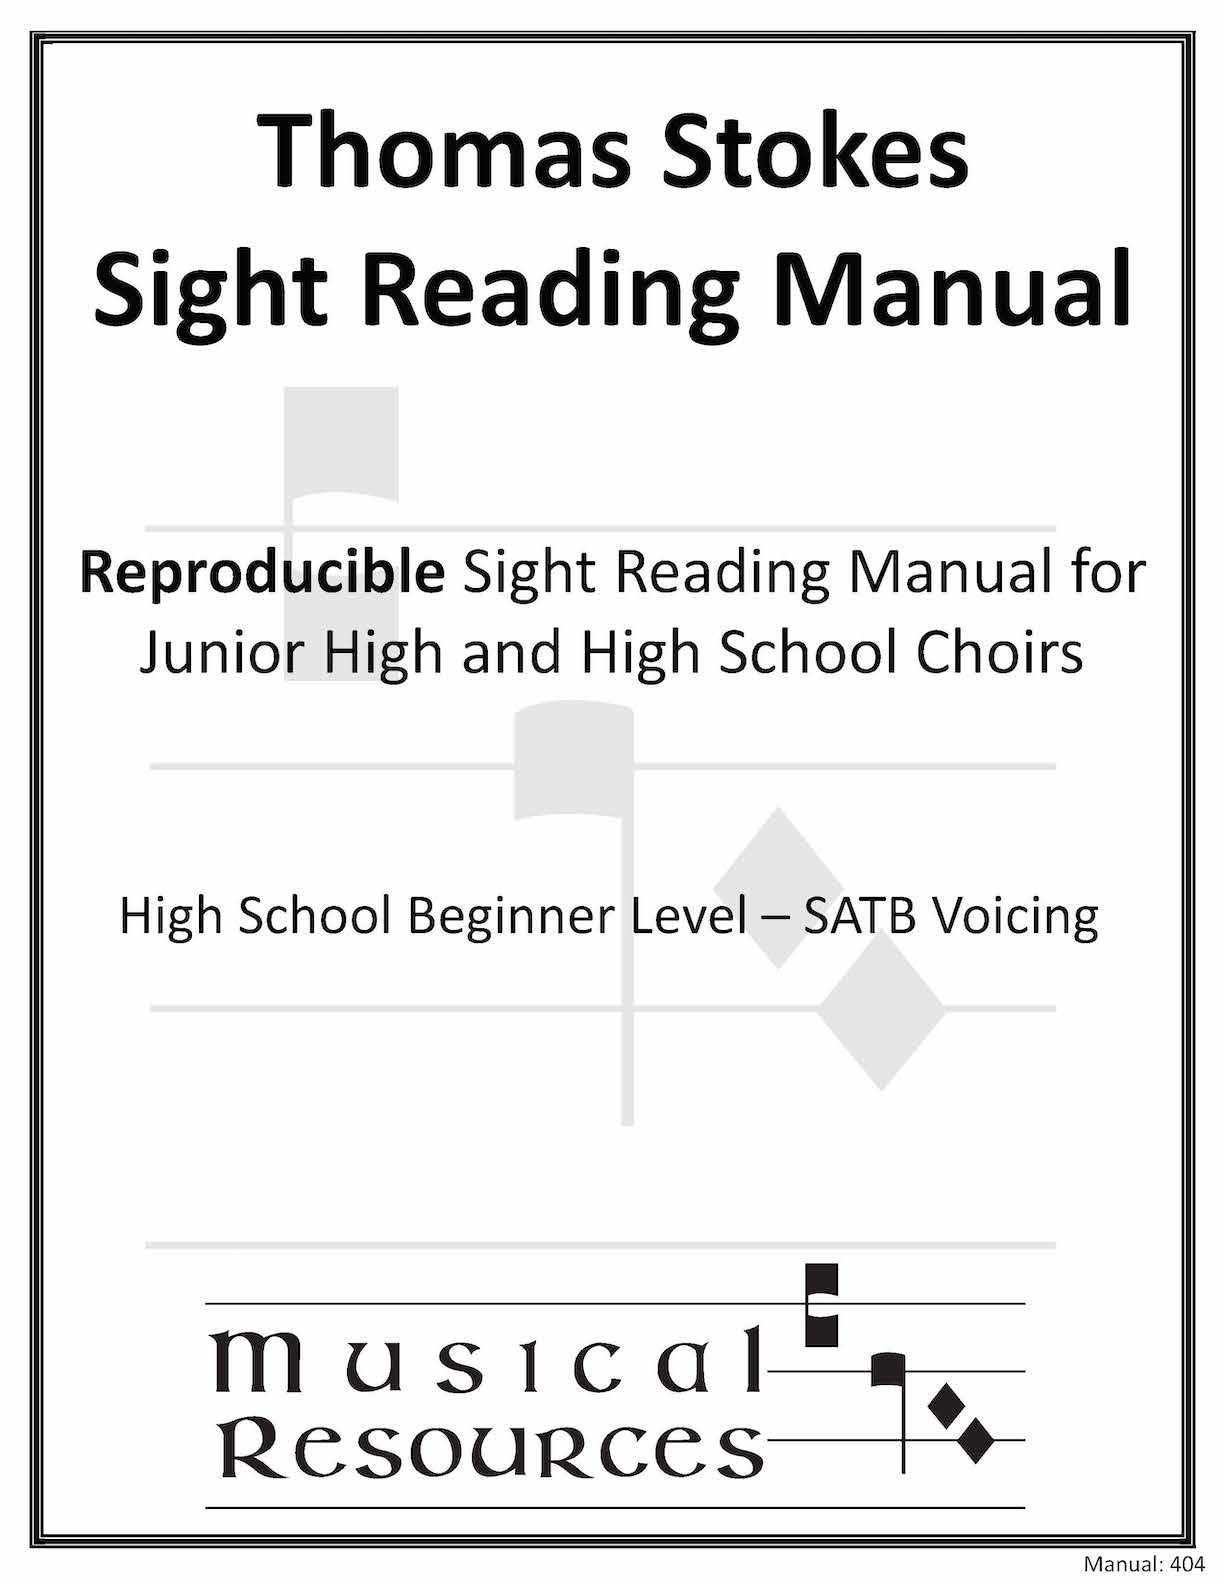 Picture of (Digital) Thomas Stokes Sightreading Manual #404 - SATB High School Beginner